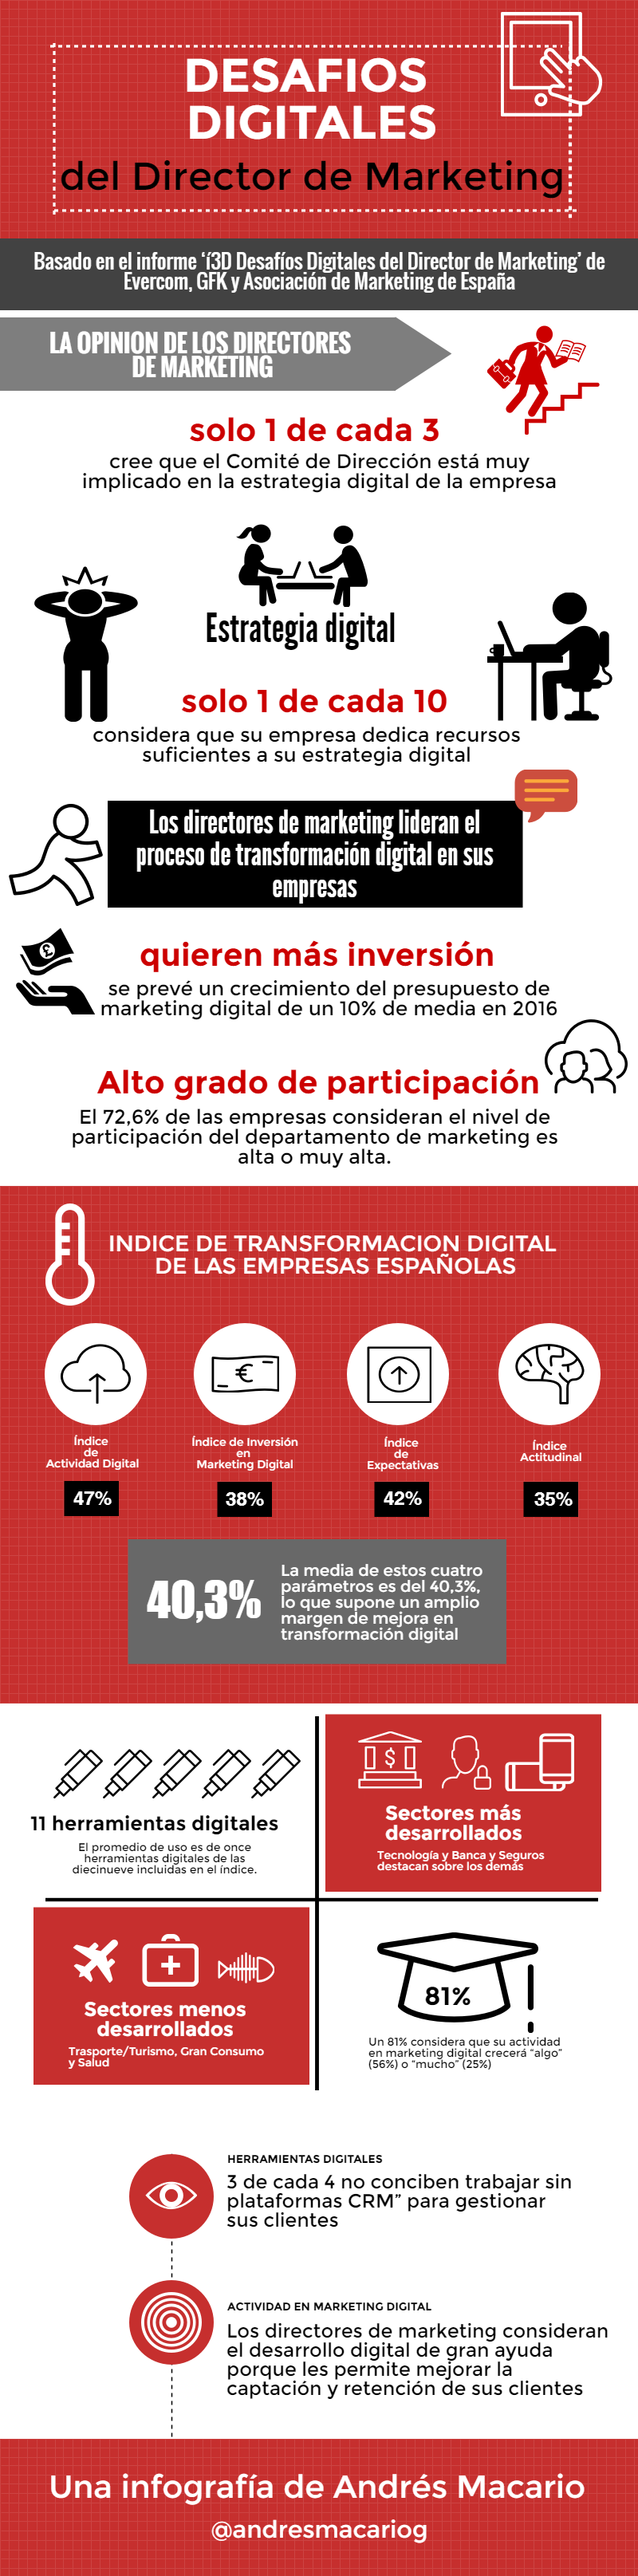 Desafíos digitales del Director de Marketing